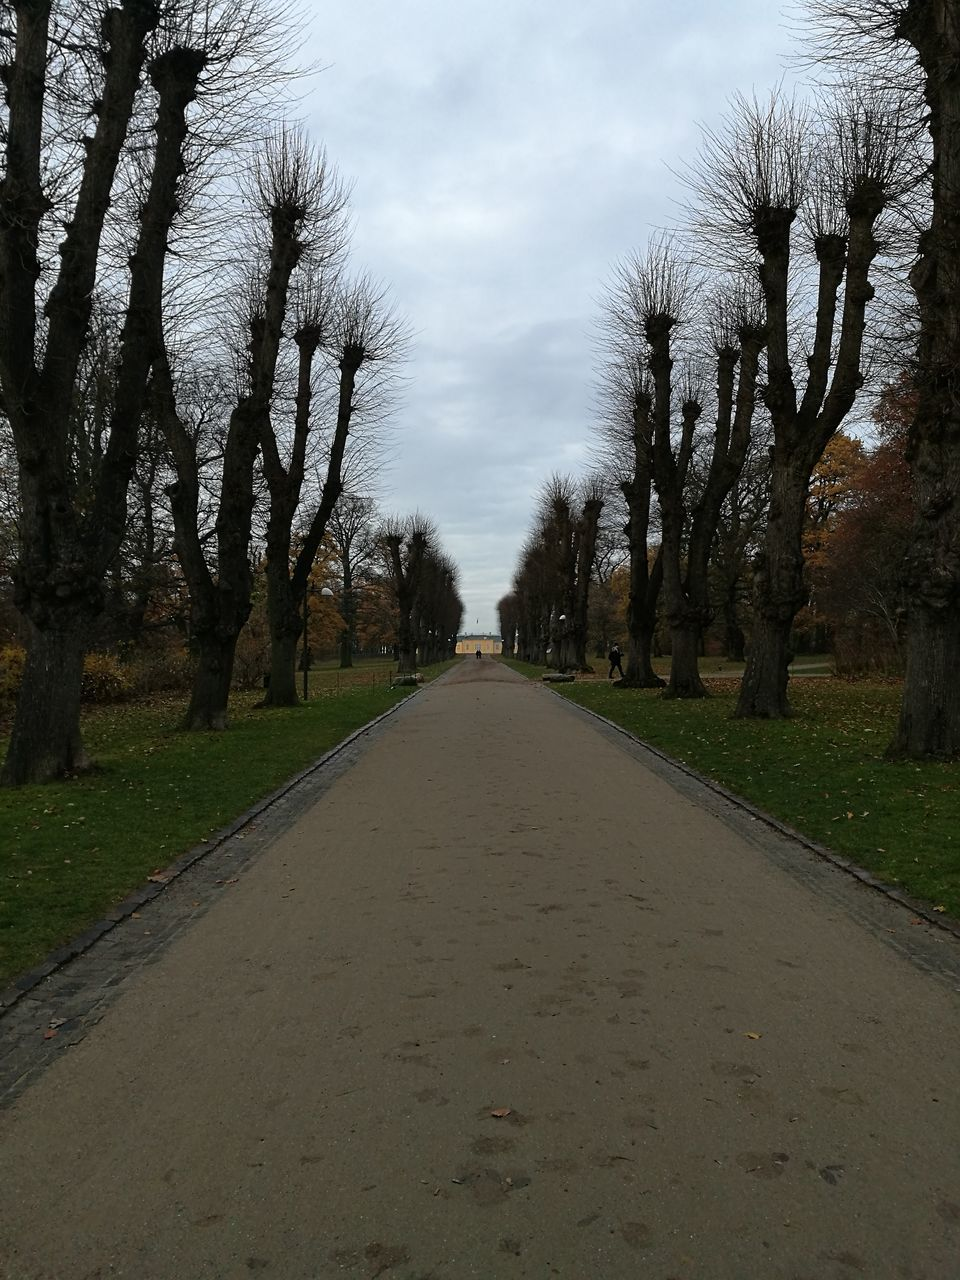 diminishing perspective, tree, the way forward, road, outdoors, sky, no people, nature, day, landscape, bare tree, scenics, beauty in nature